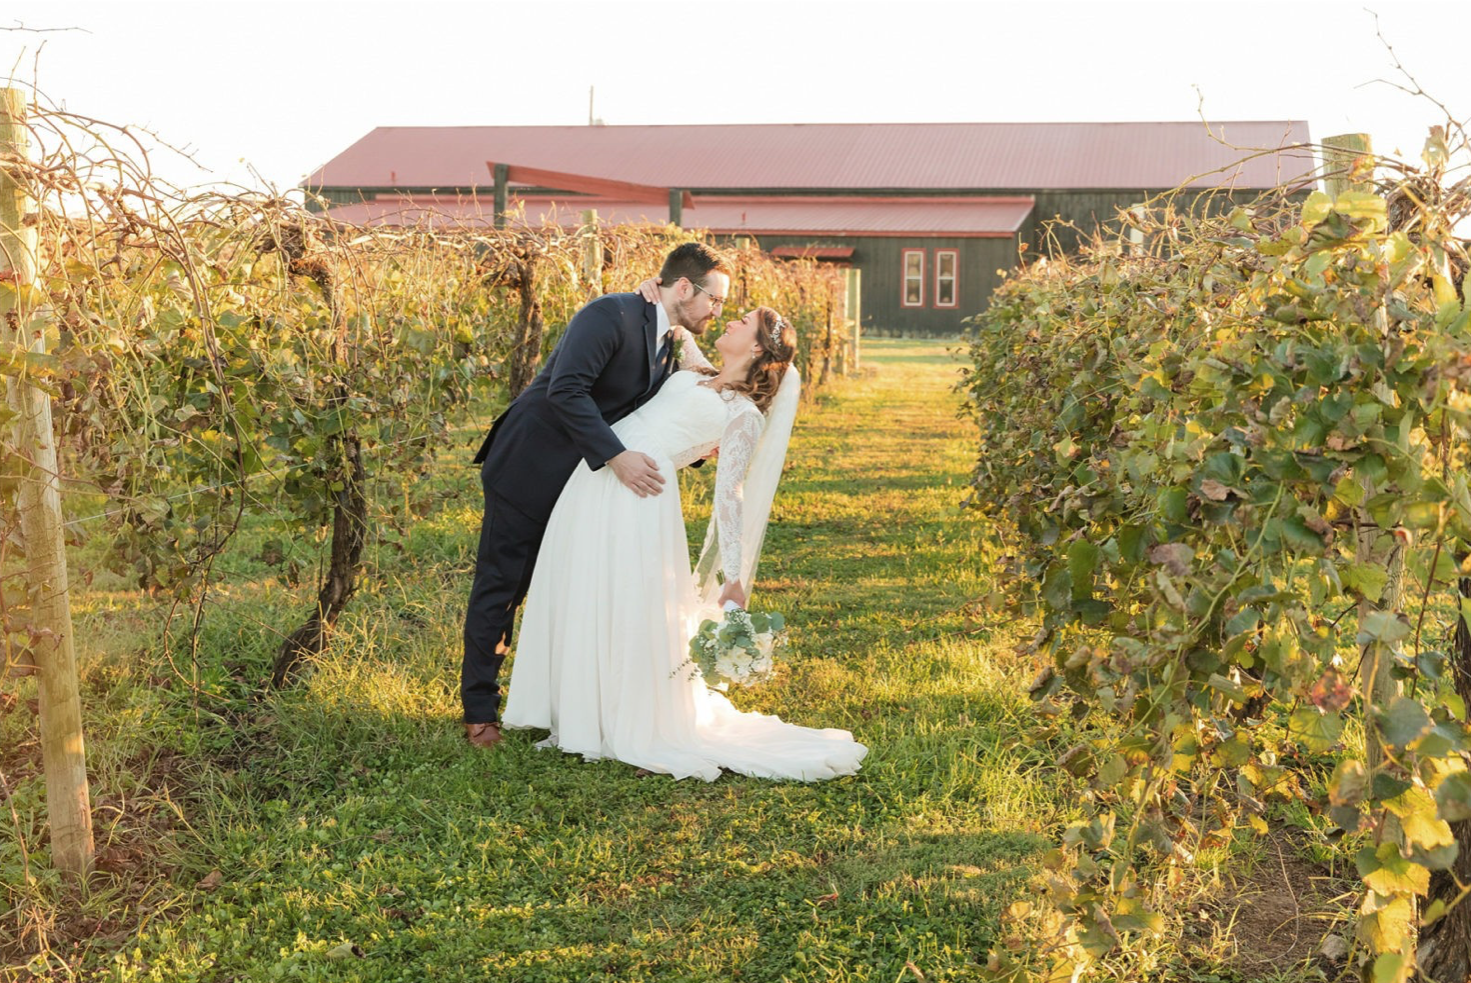 A wedding couple is kissing each other at the Talon Winery in Kentucky.